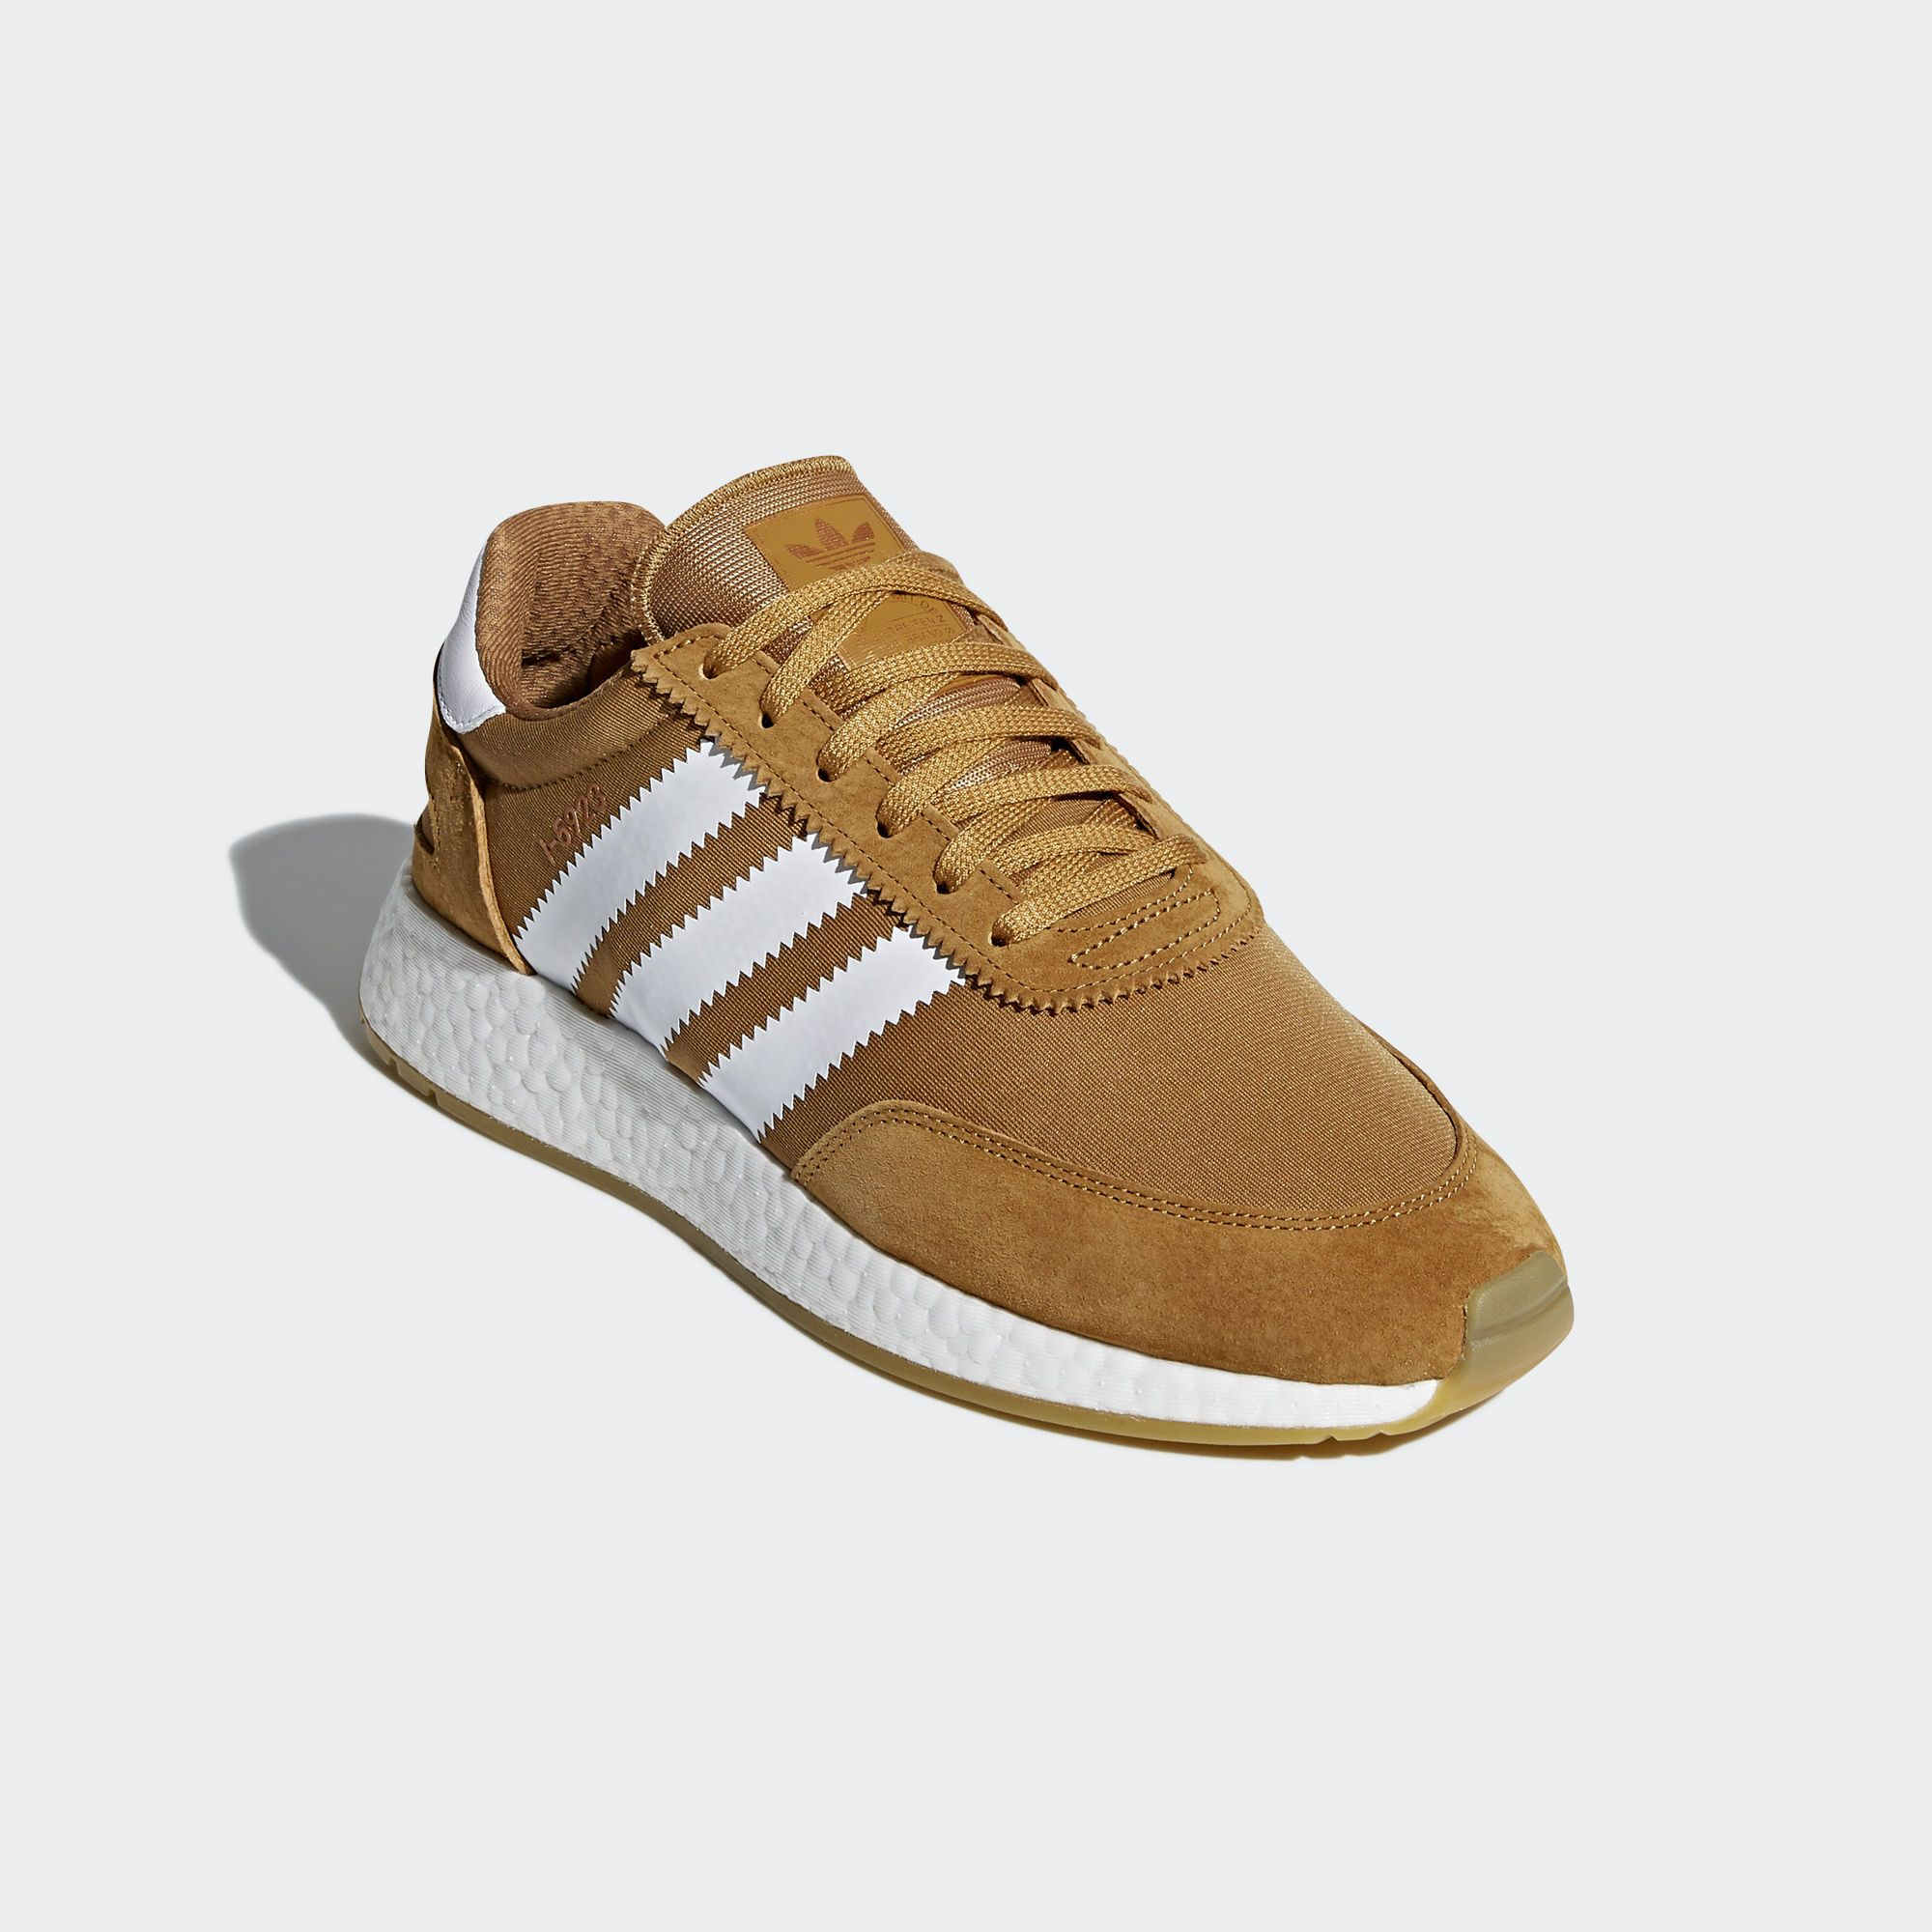 lowest price 6a49f d4f14 adidas I-5923 Shoes - Brun  adidas Sweden